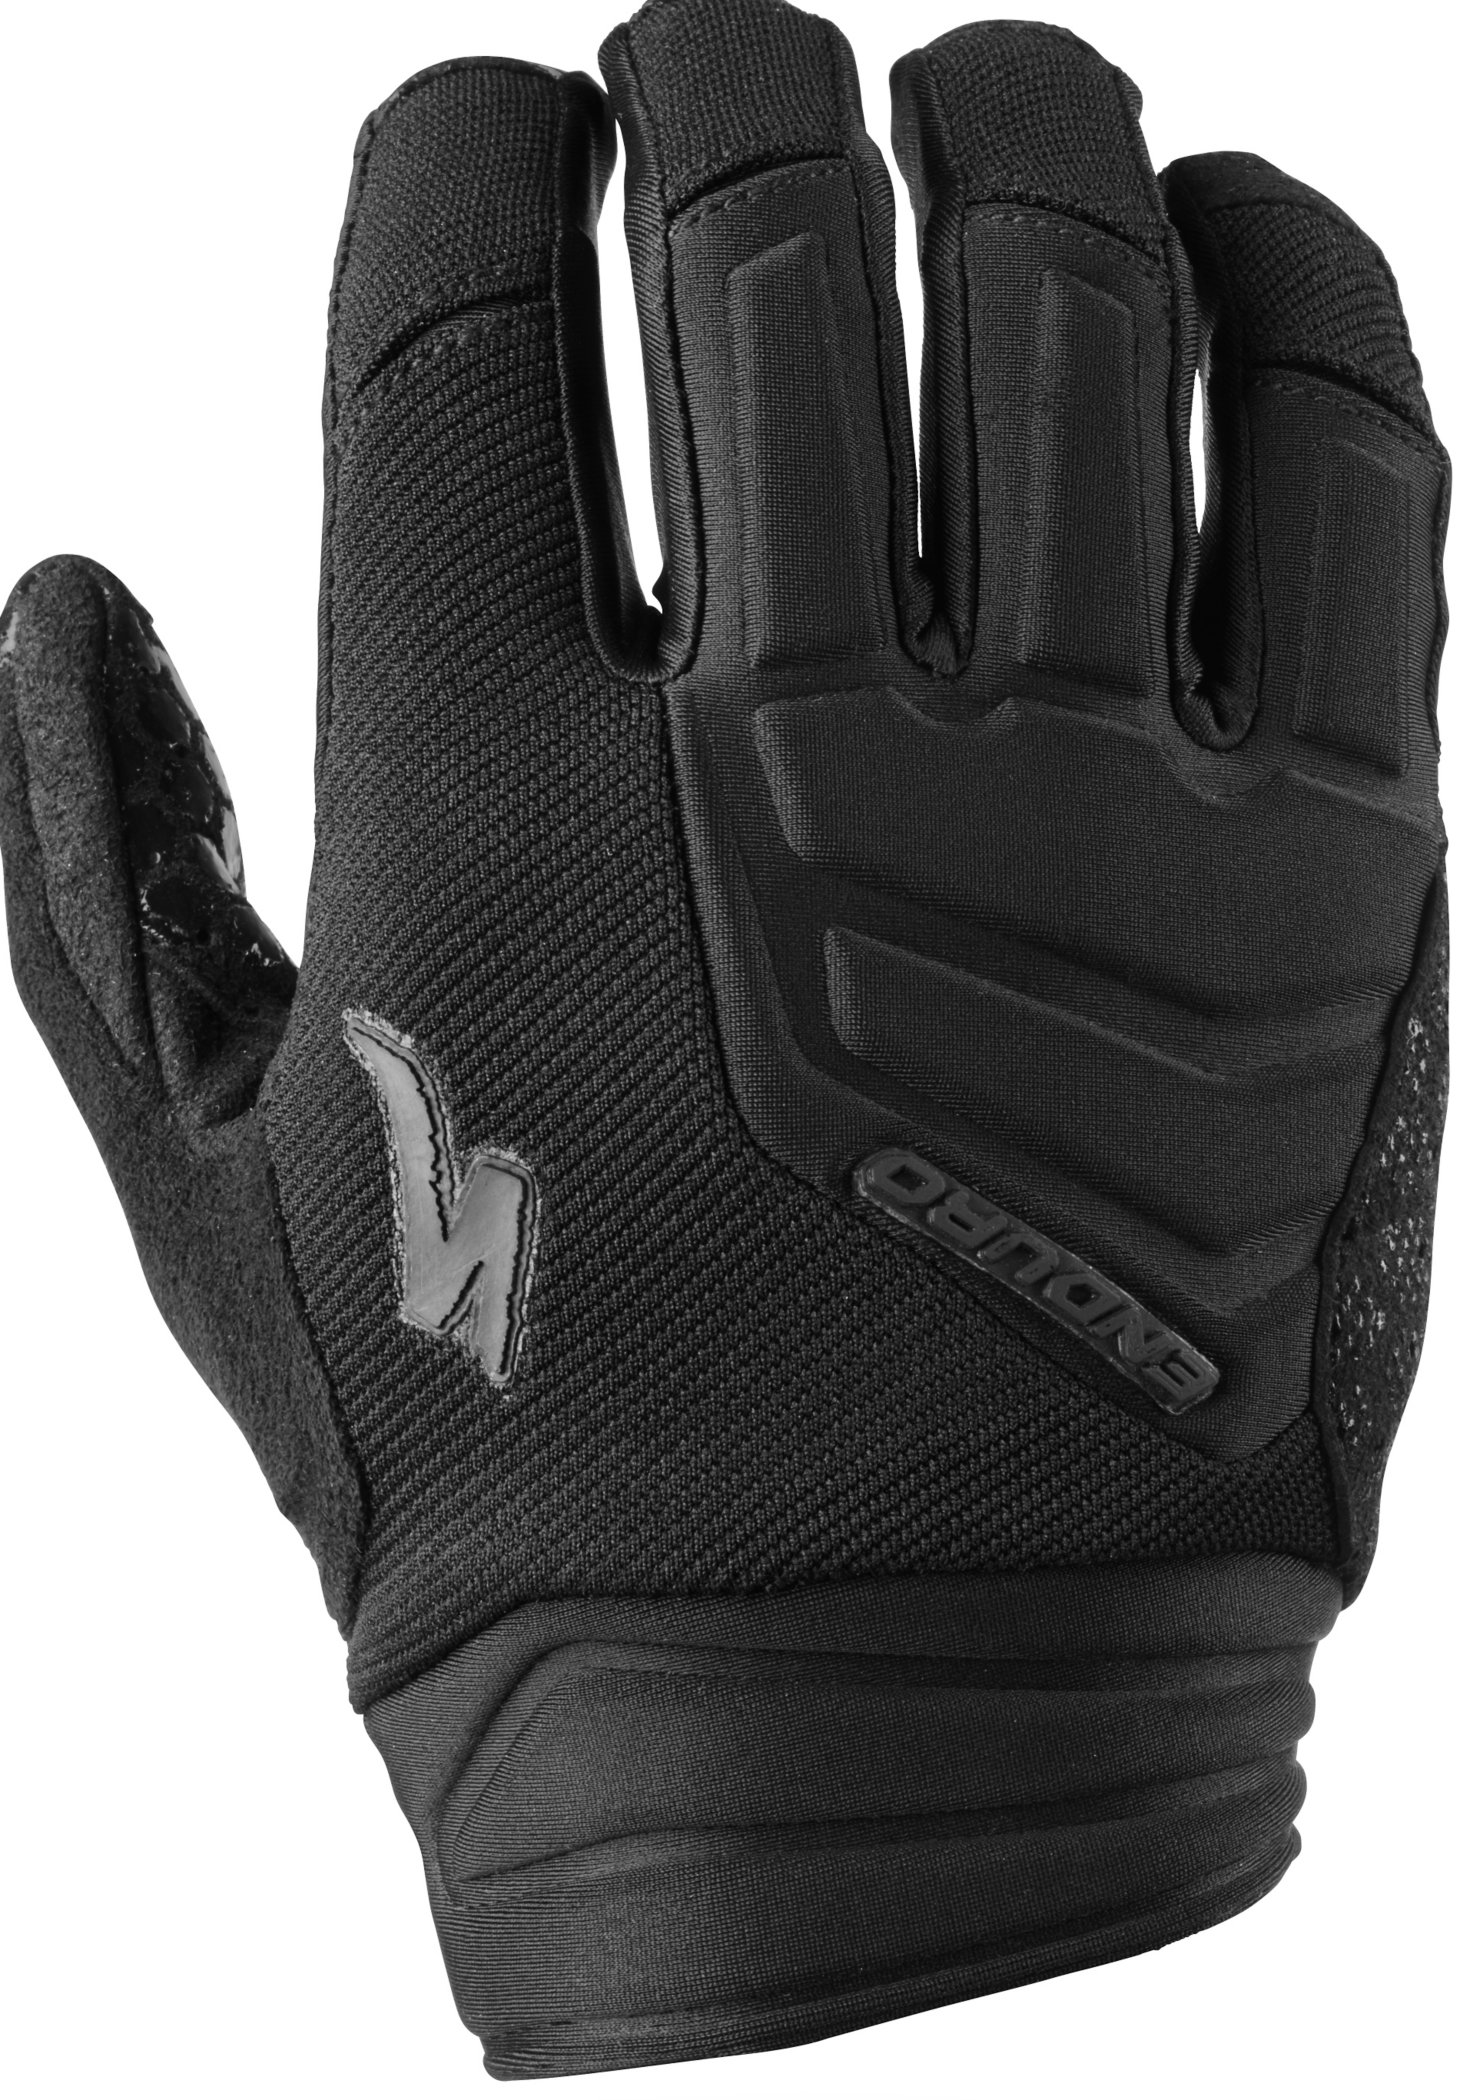 SPECIALIZED ENDURO GLOVE LF BLK S - Bikedreams & Dustbikes